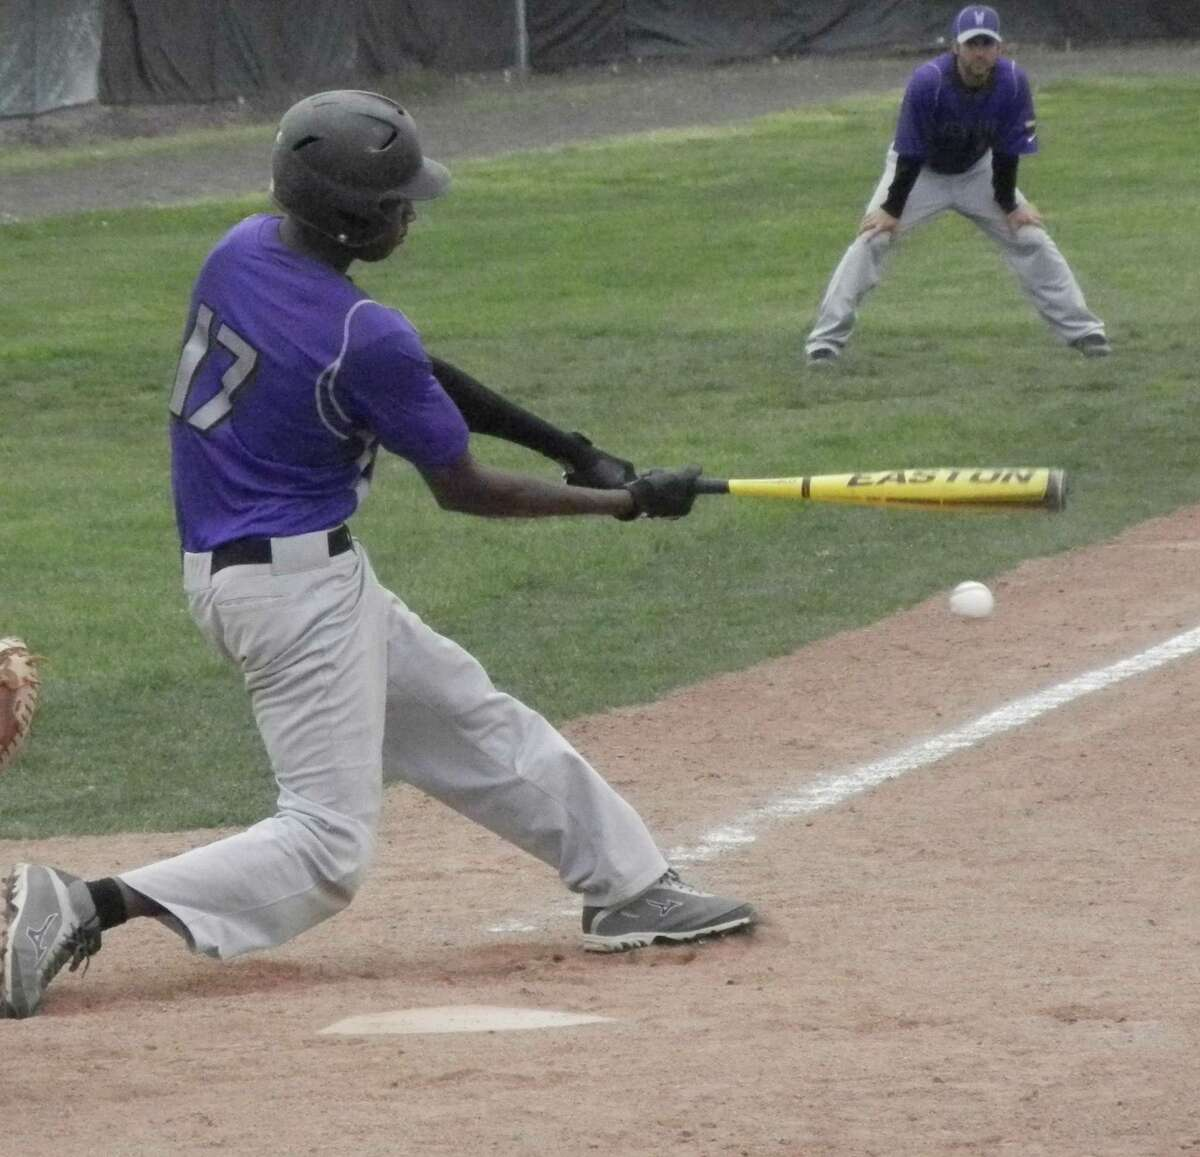 Westhill junior left fielder Dave Lauture smacks a double down the left field line in the top of the second inning on Wednesday, May 14 in an FCIAC baseball game at Kiwanis Field in Fairfield. Ludlowe defeated the Vikings 4-3 in the bottom of the seventh inning.